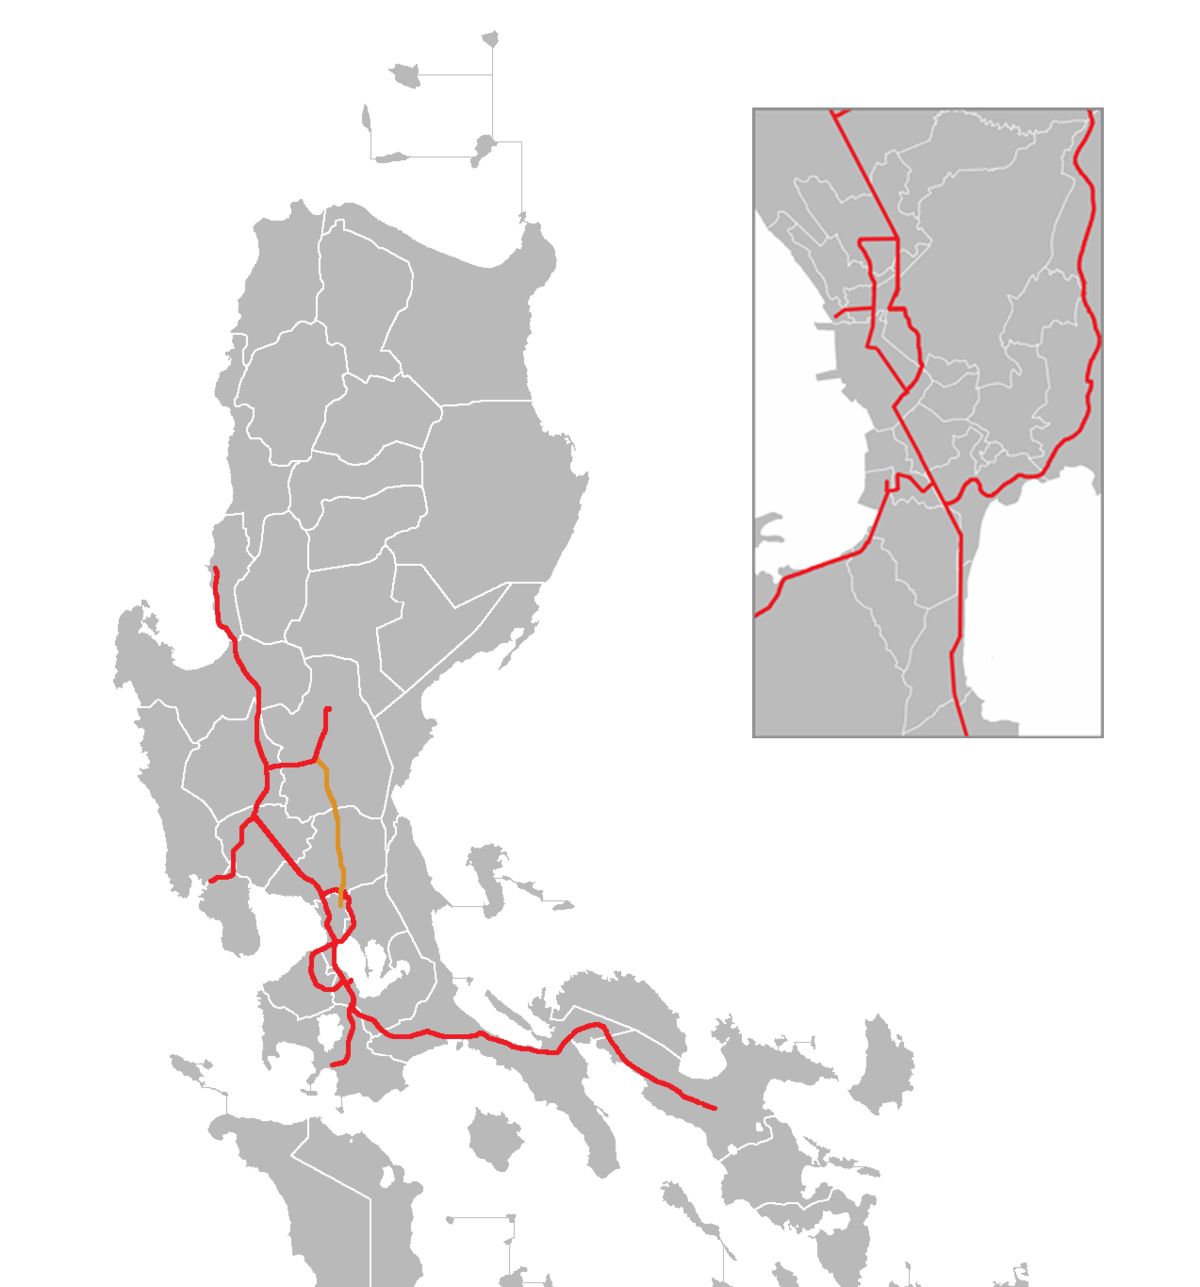 North Luzon East Expressway - Wikipedia